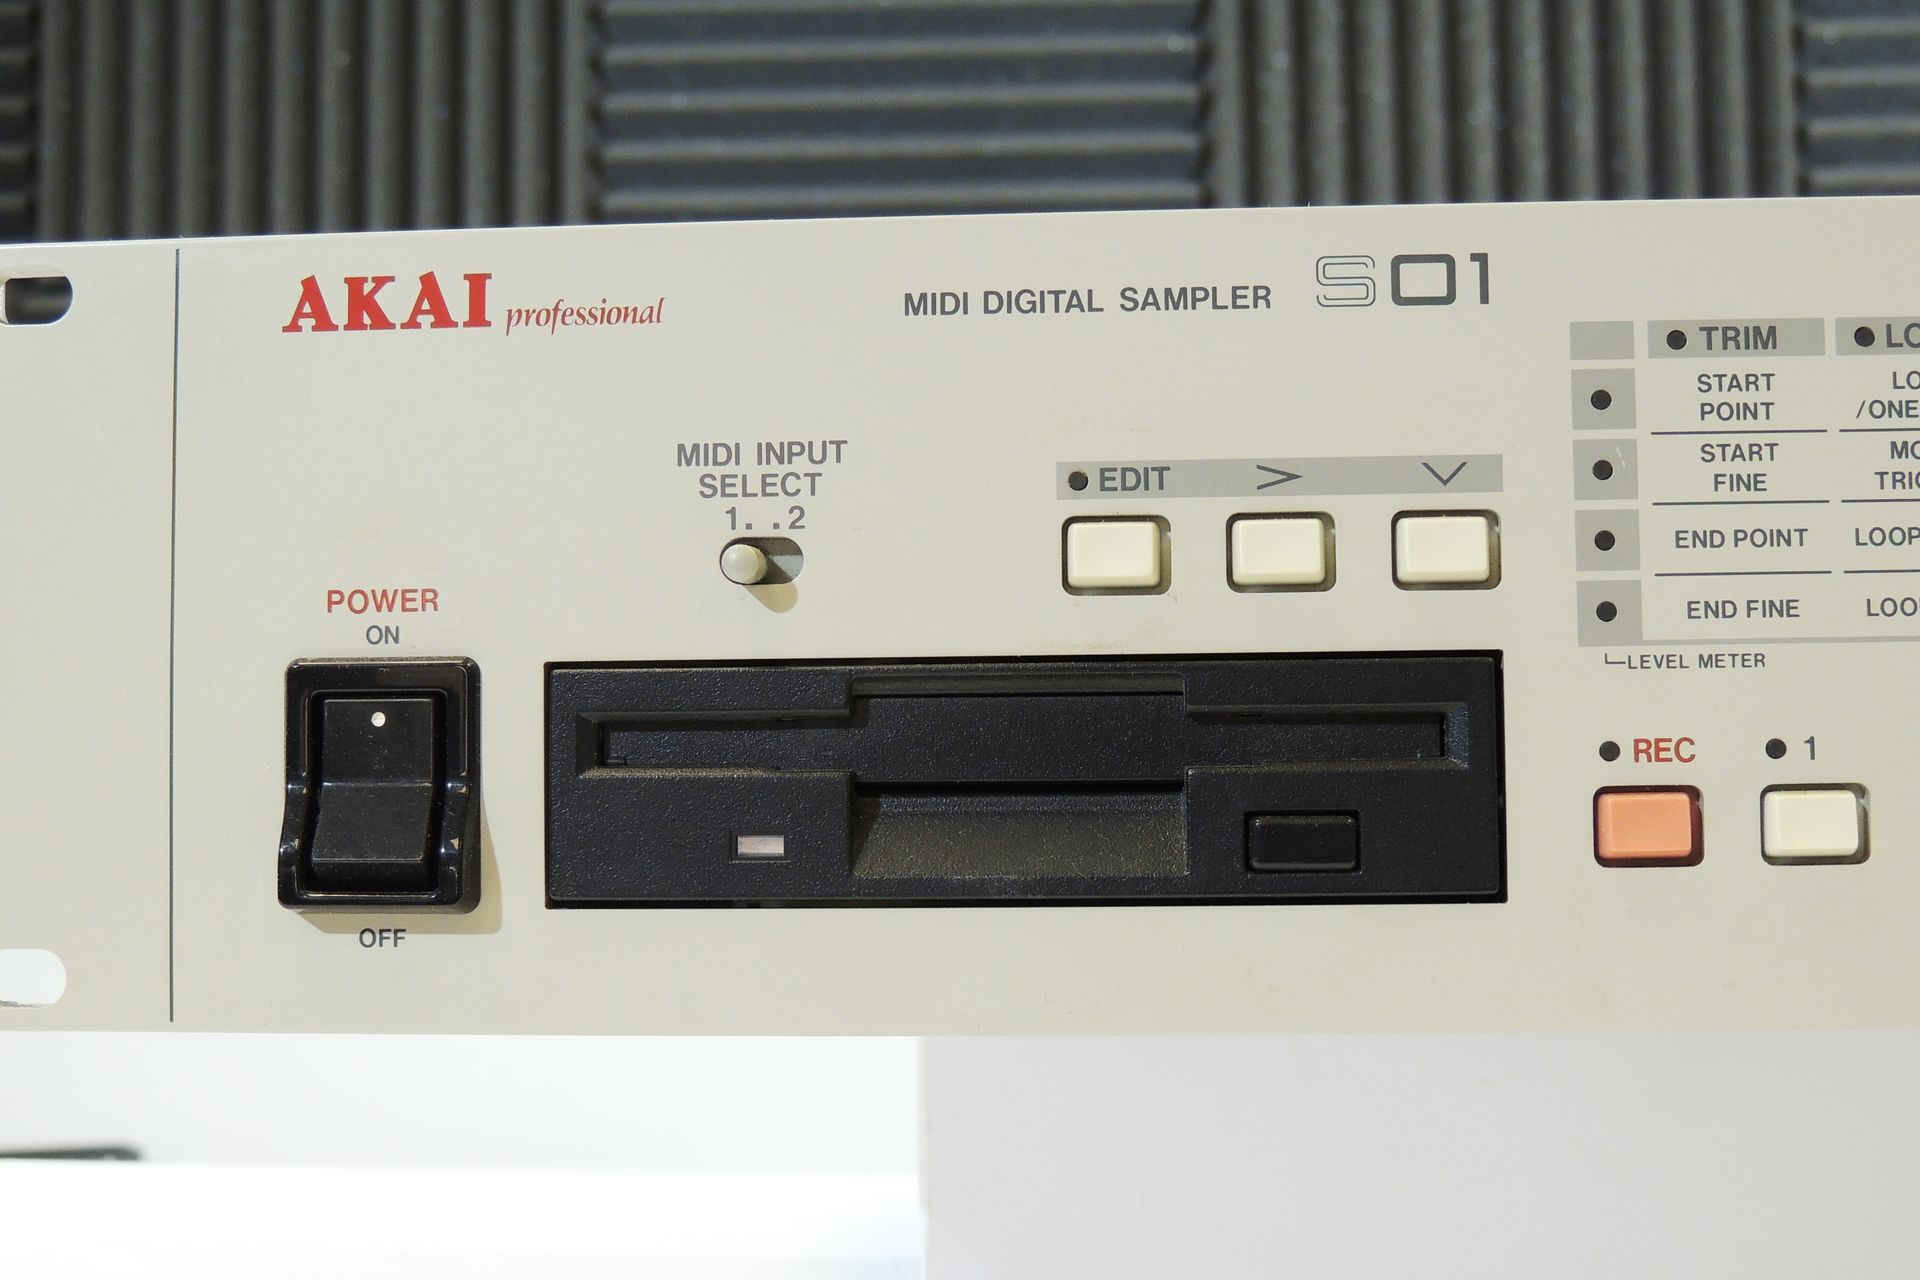 Akai S01 sampler for sale at Plasma Music